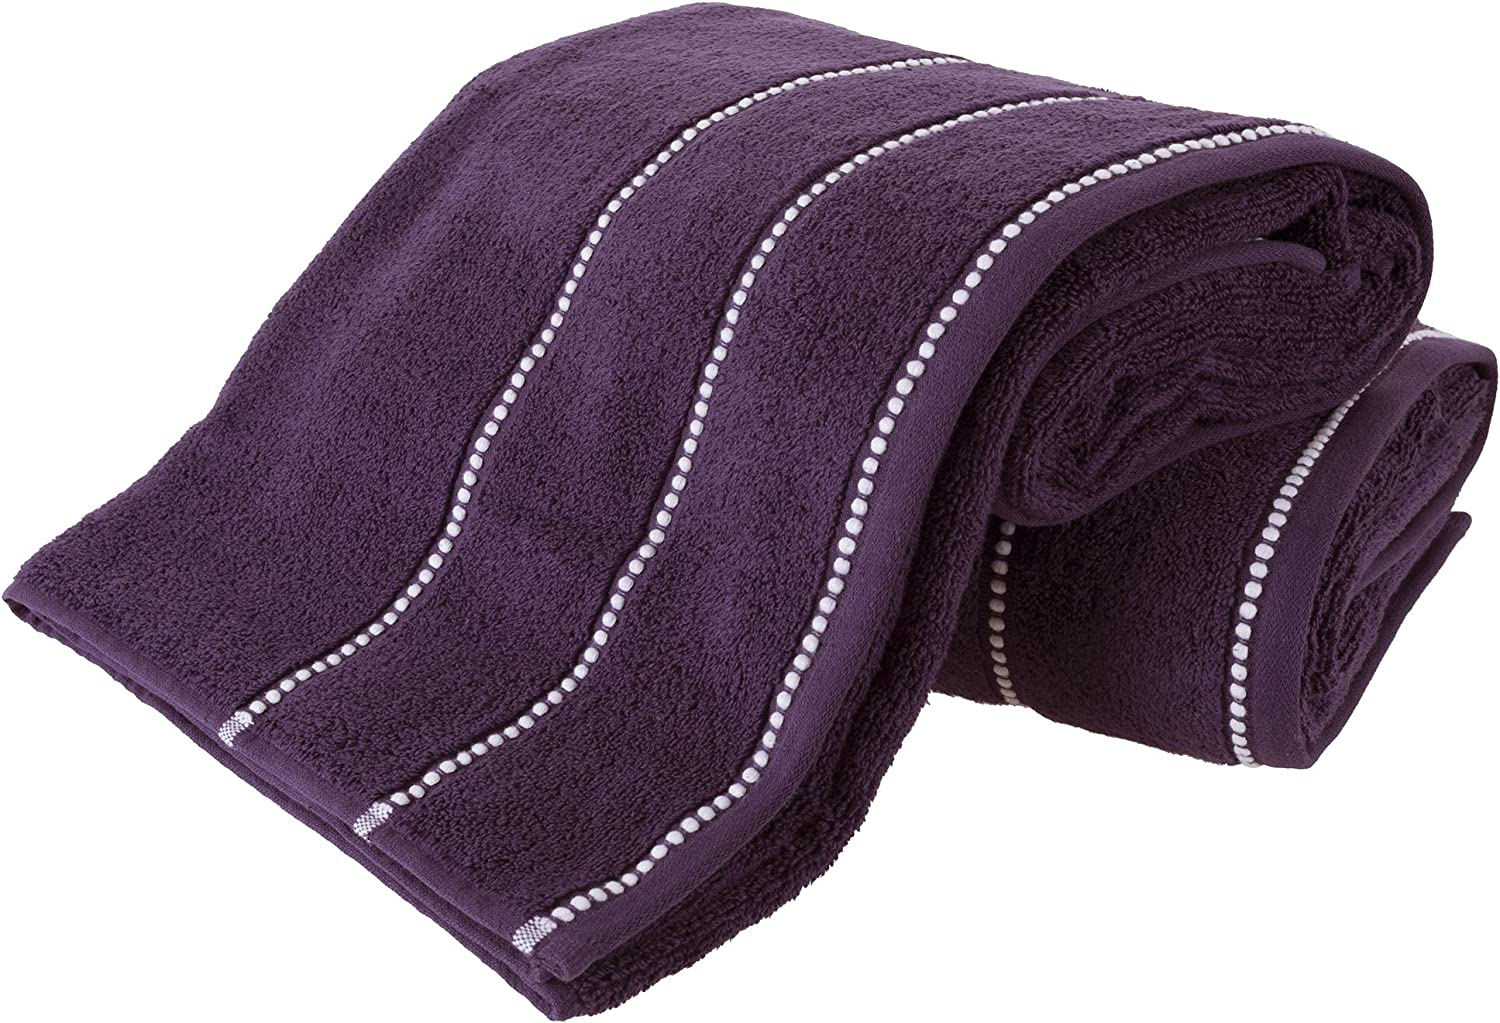 Luxury Cotton Towel Set- 2 Piece Bath Sheet Set Made From 100% Zero Twist Cotton- Quick Dry, Soft and Absorbent By Lavish Home (Eggplant / White)